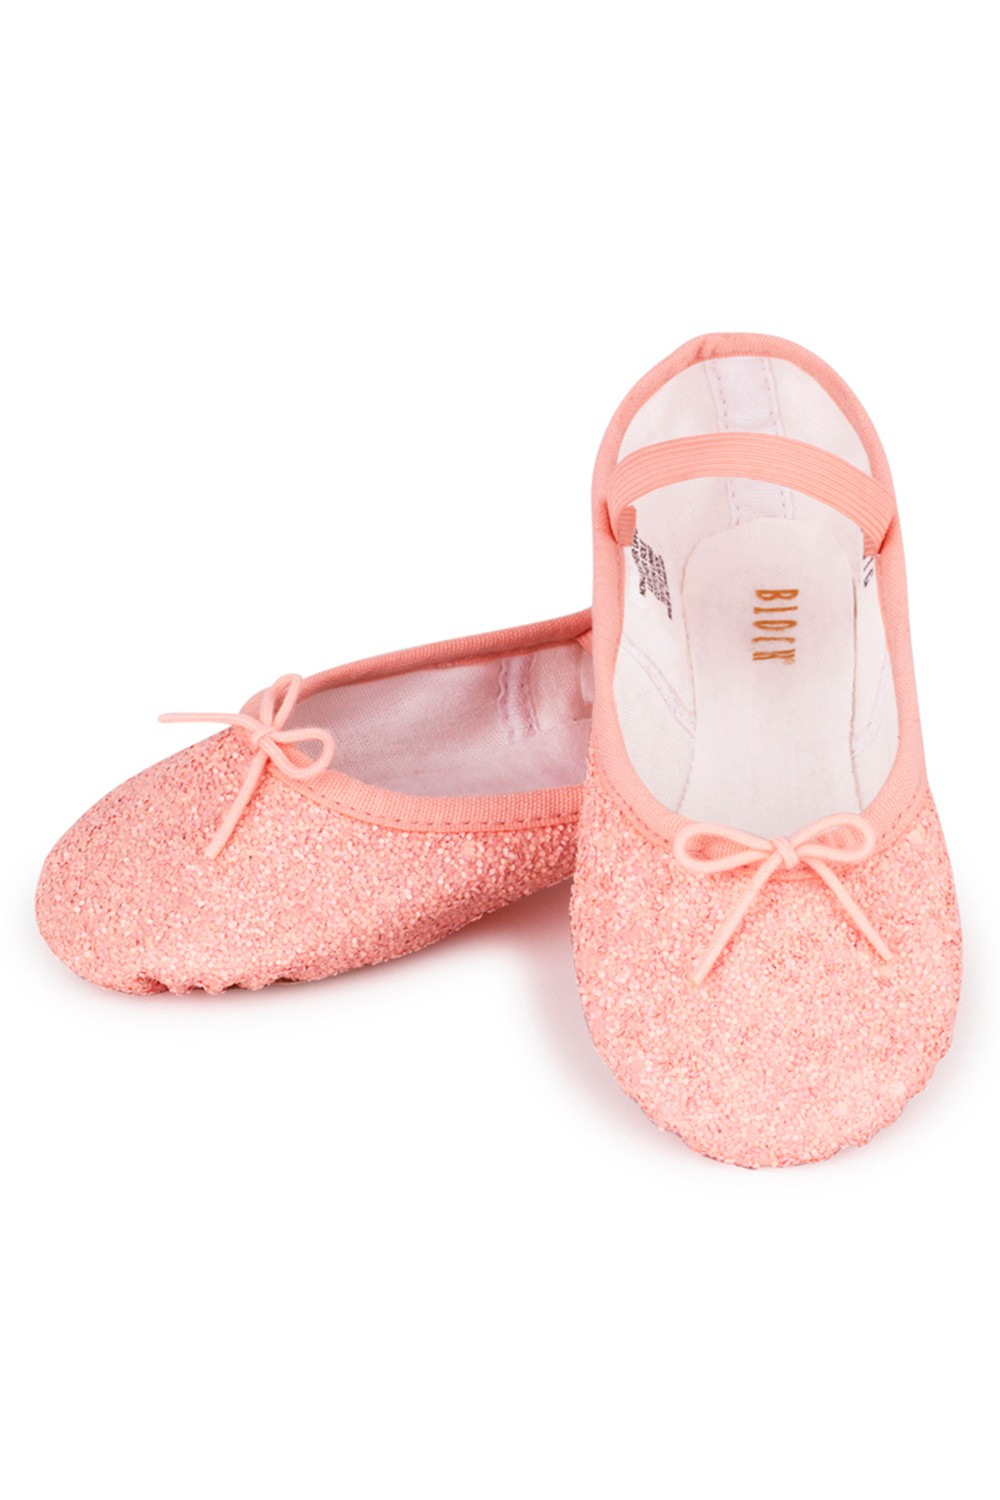 Sparkle - Bambina Girl's Ballet Shoes